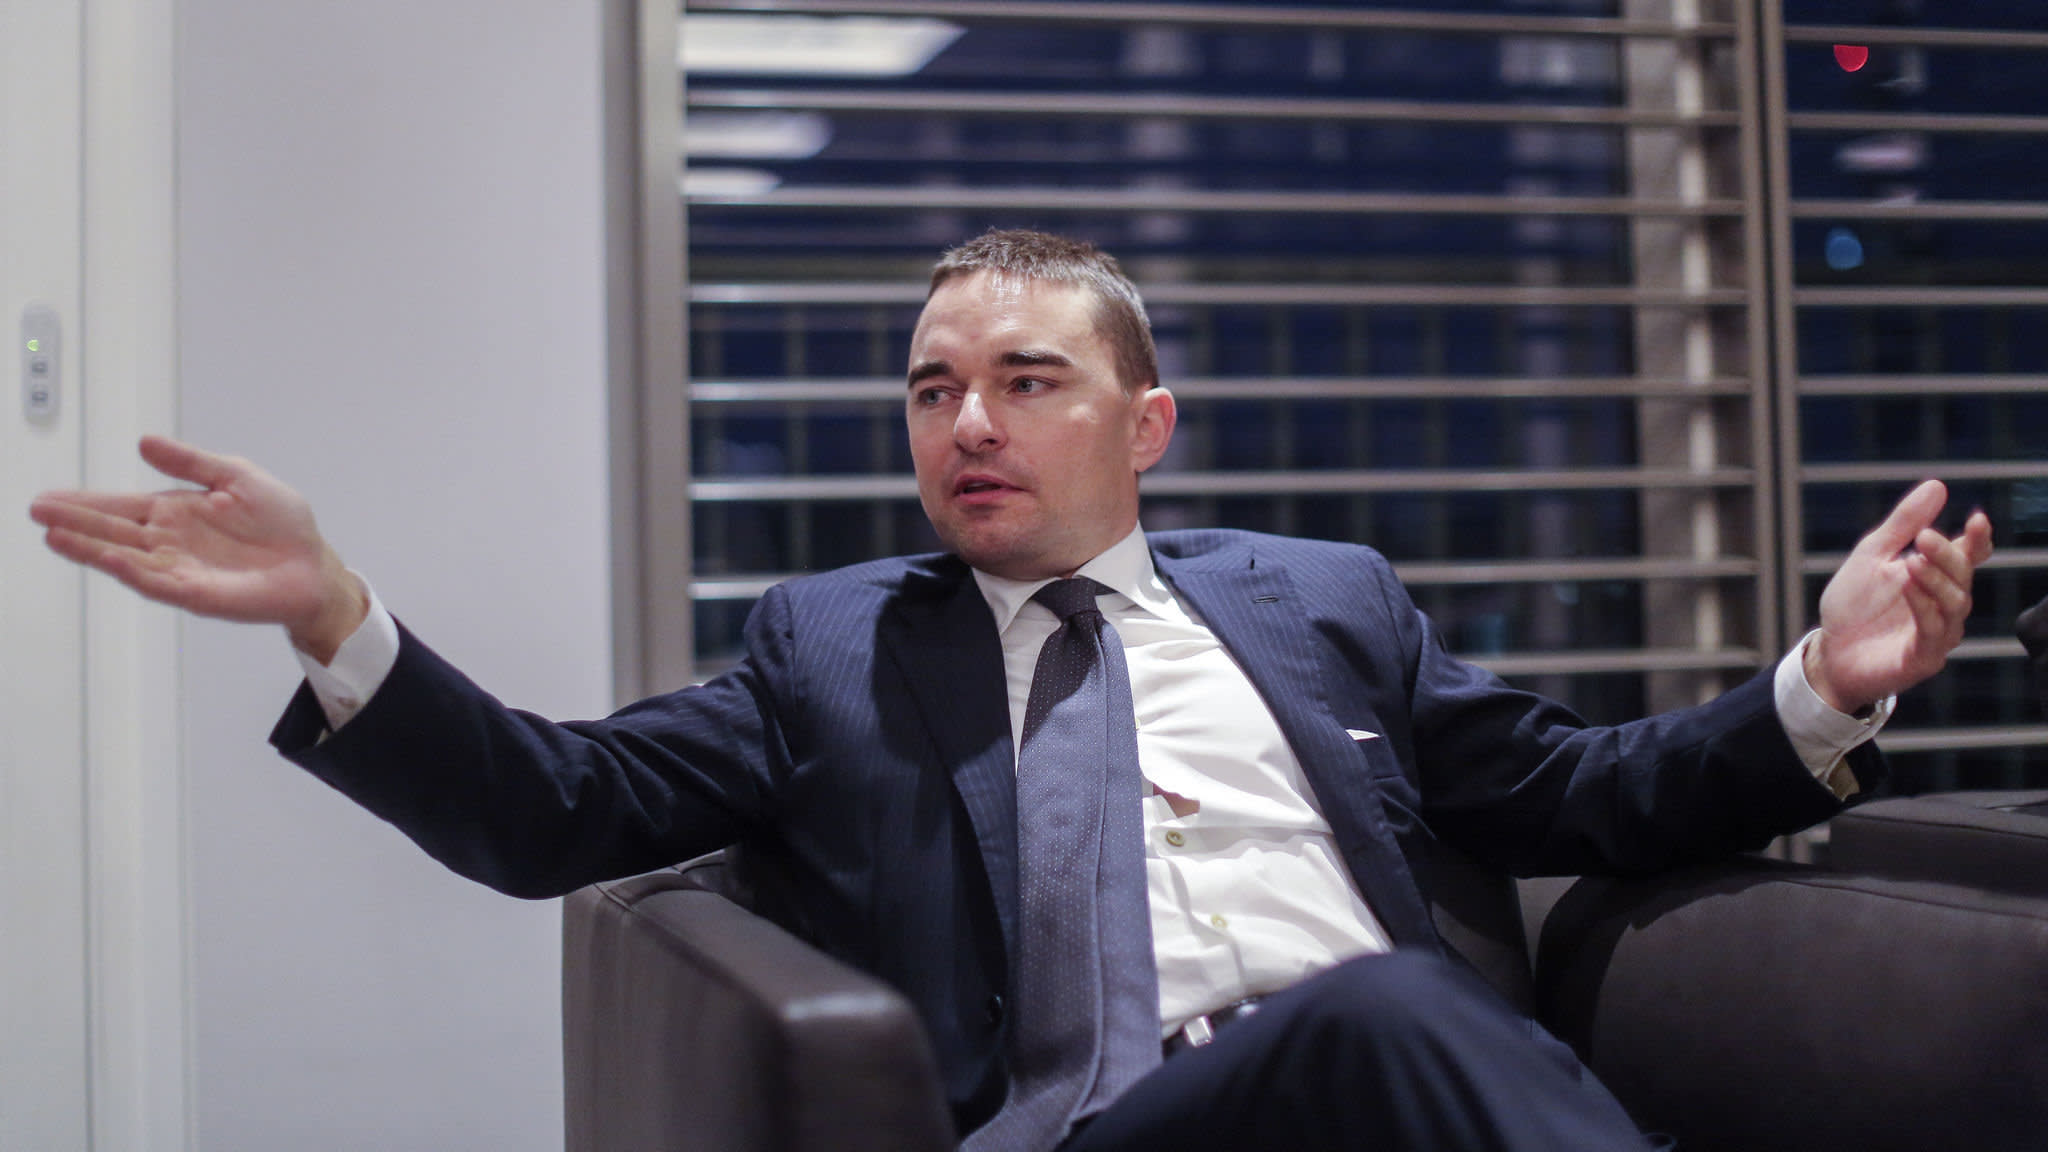 Goldman agreed to support fund with Lars Windhorst ties